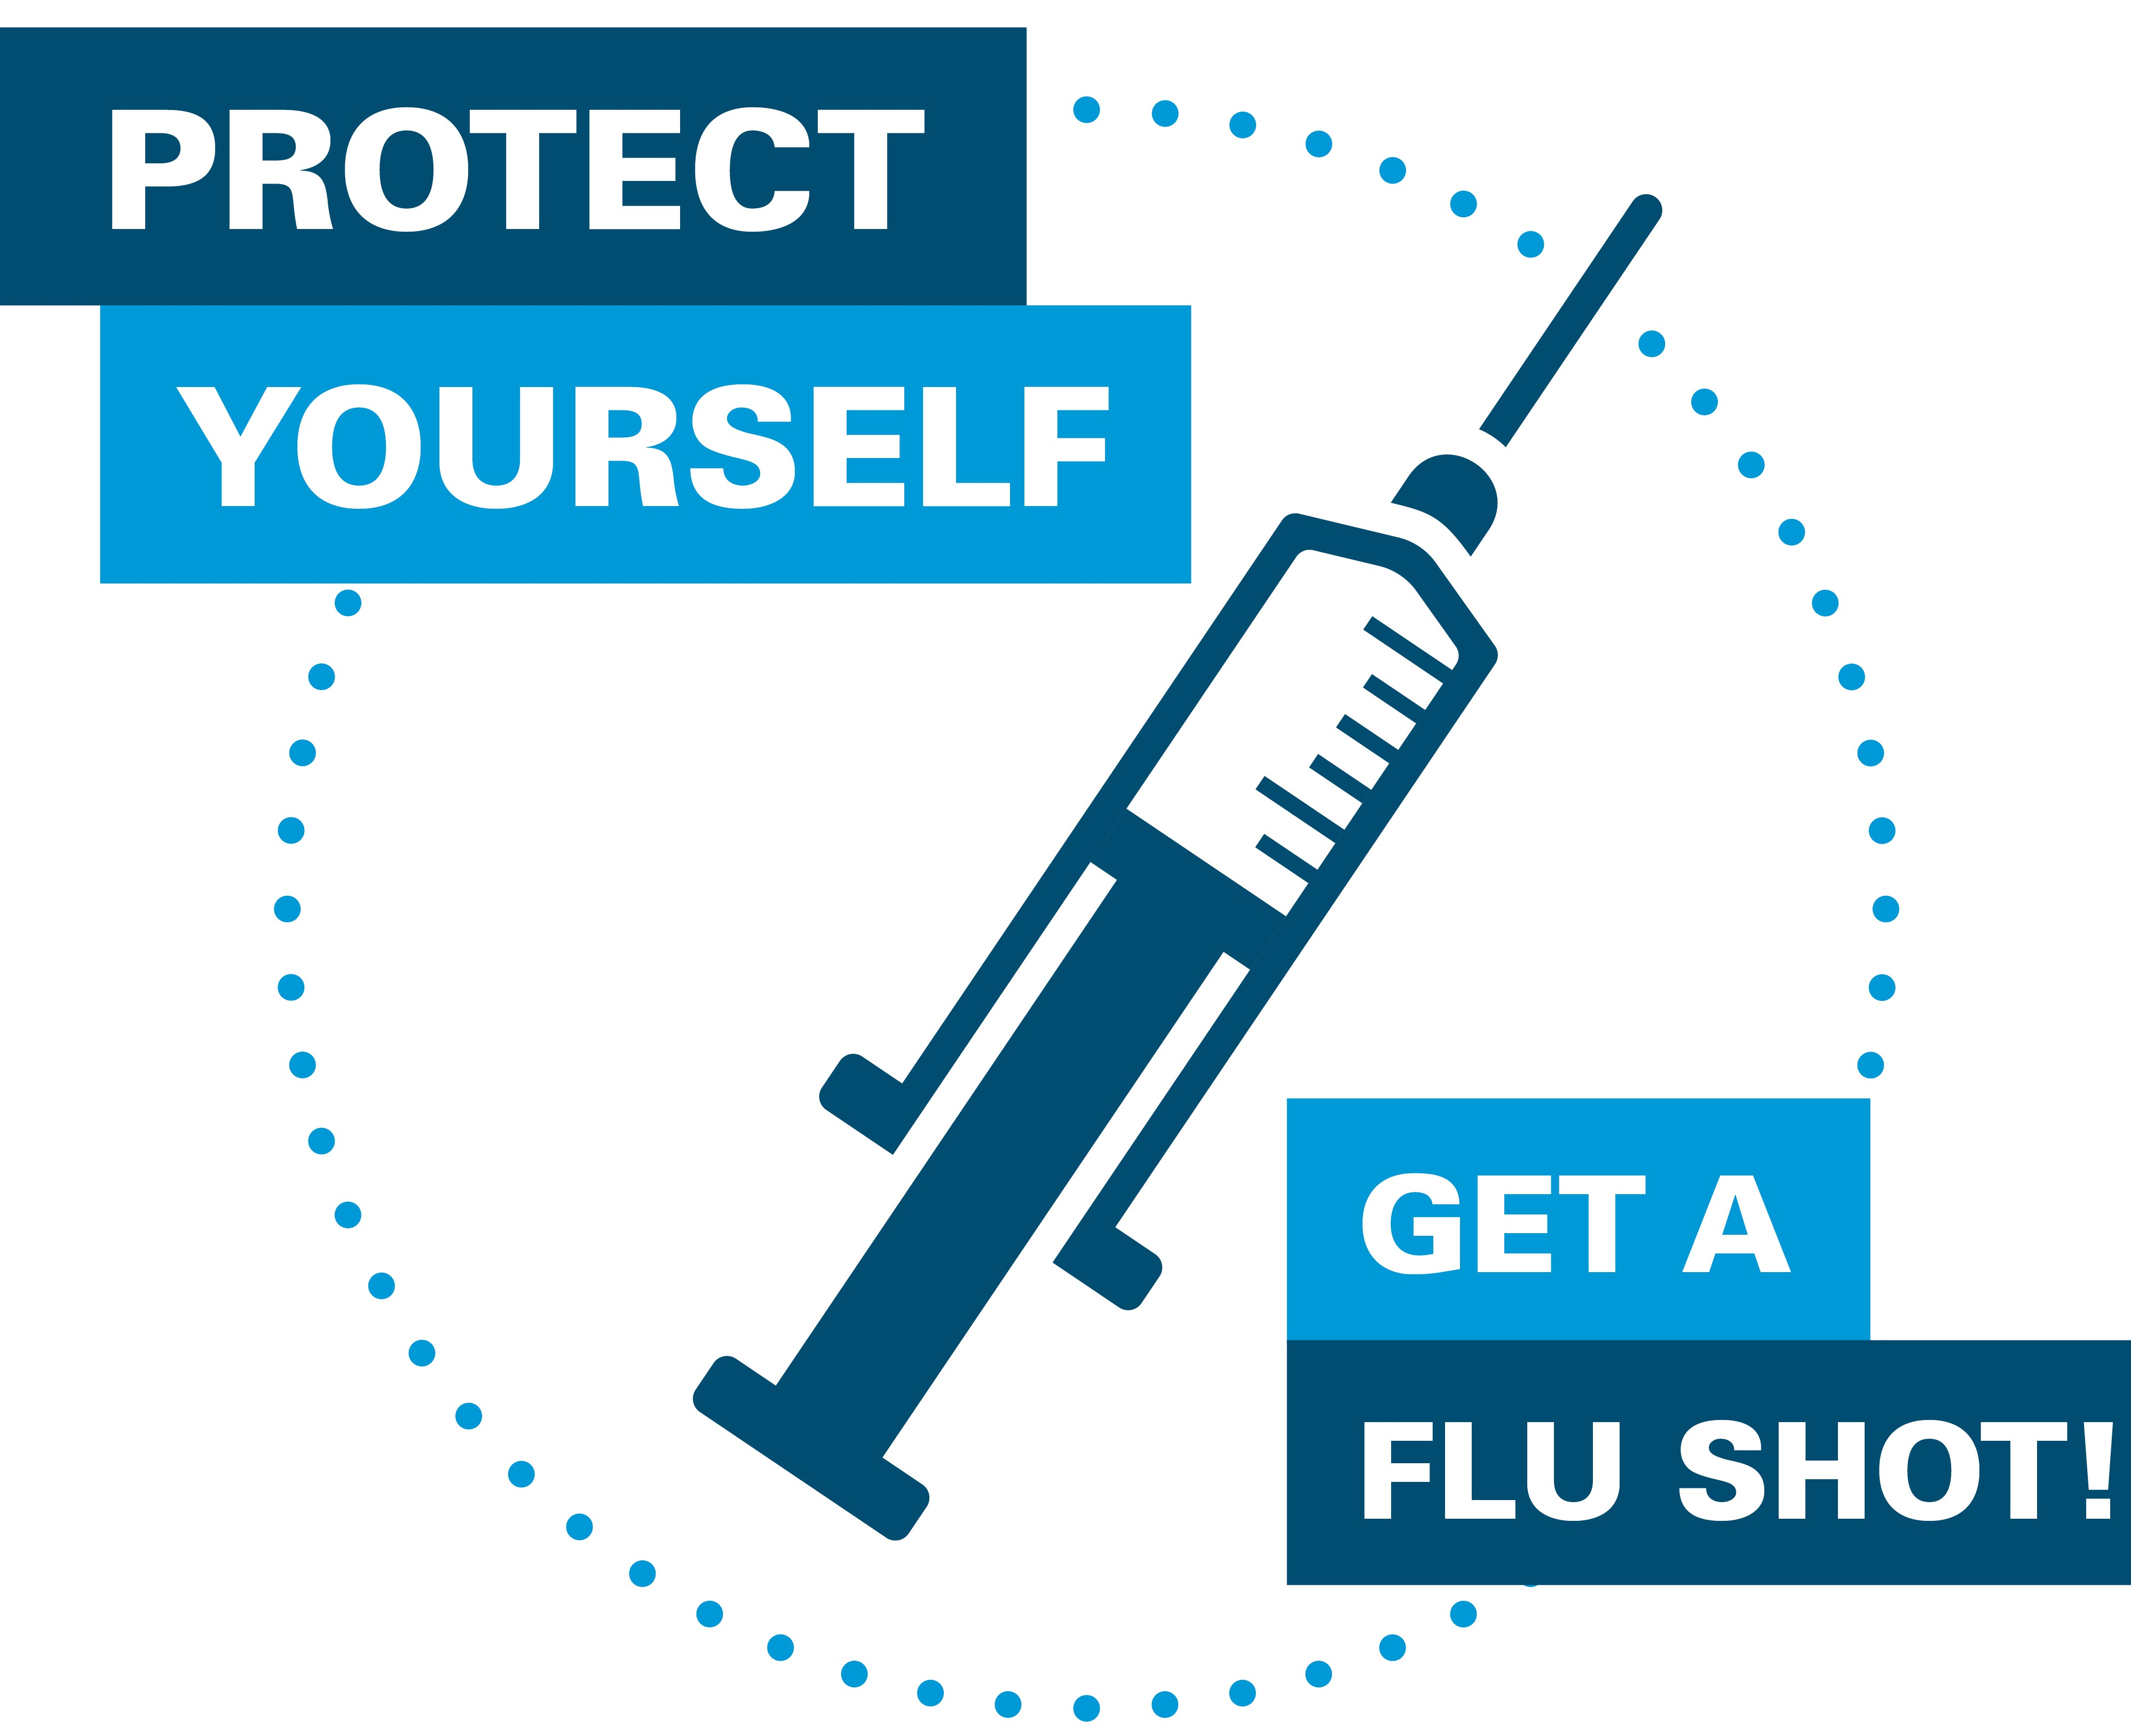 protect yourself with a flu shot